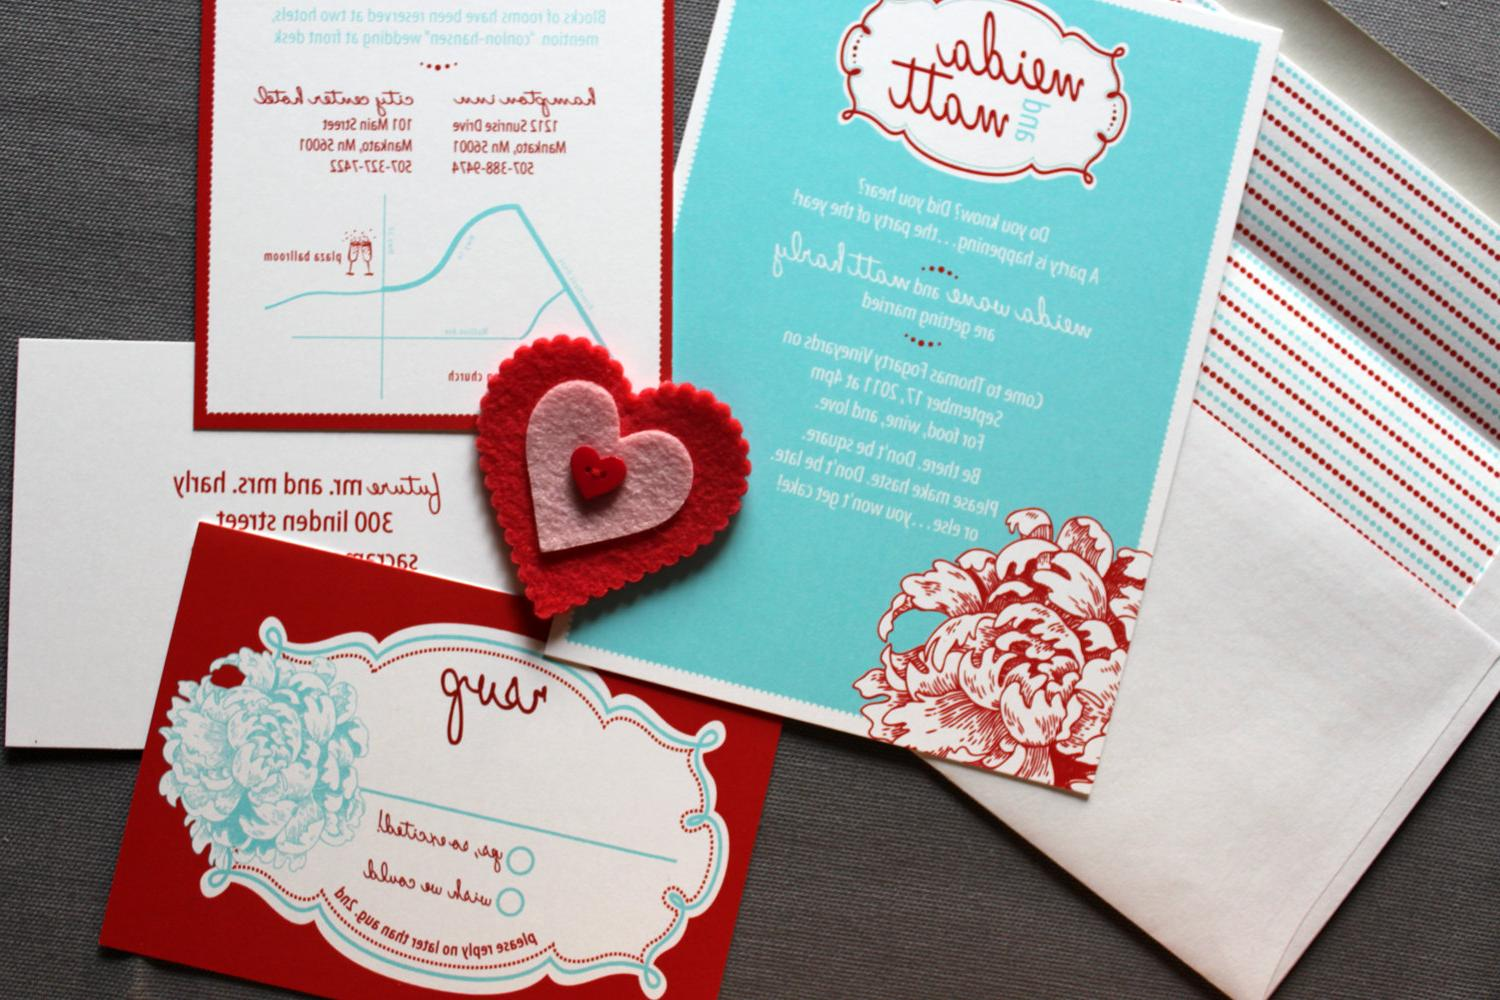 Retro Love Wedding invitations